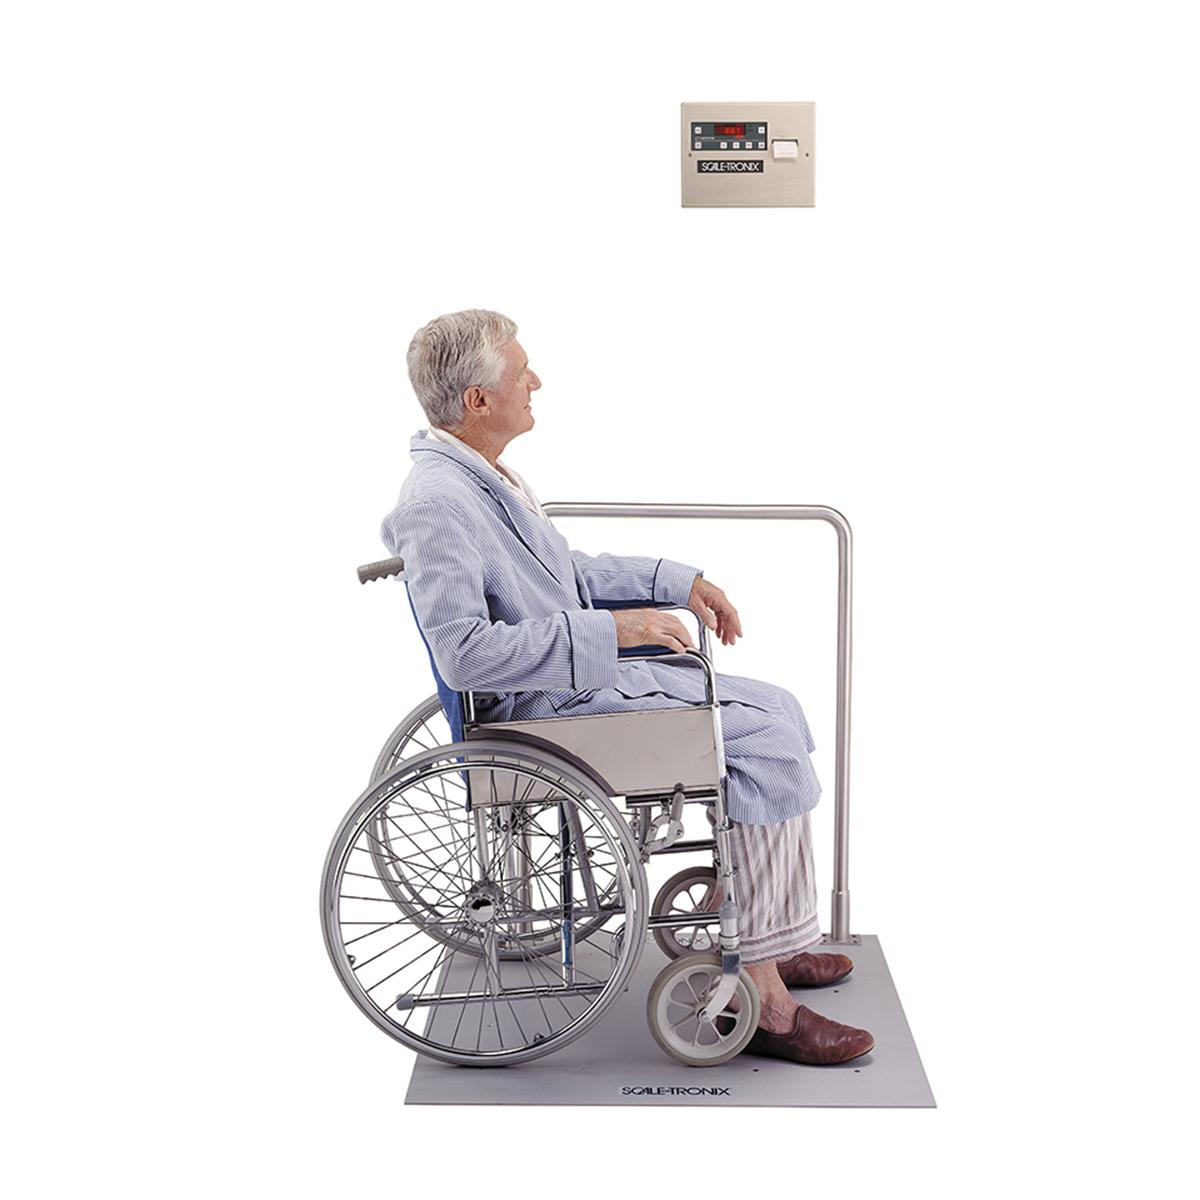 Patient in wheelchair on Scale-Tronix In-floor Scale